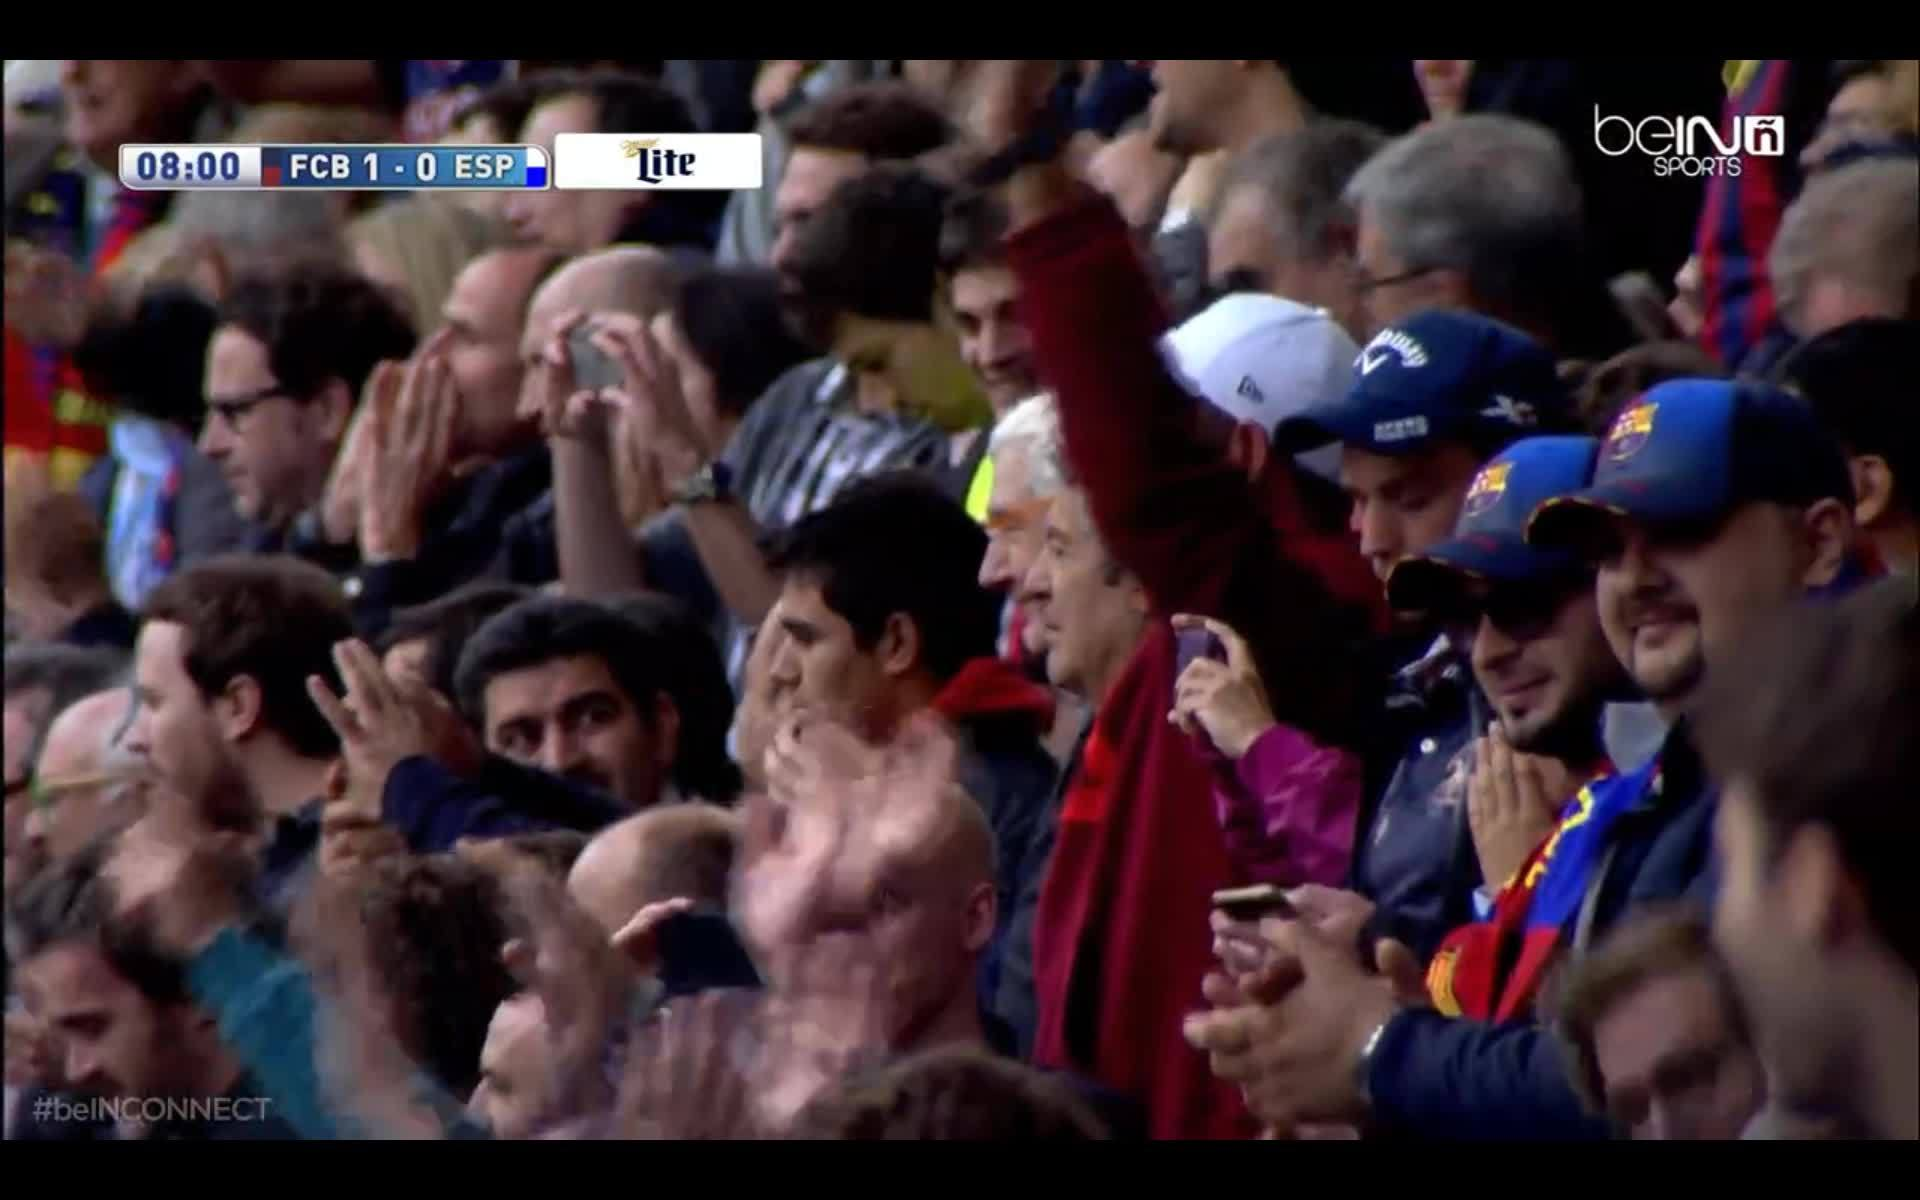 barca, Messi Finger Guns 1 GIFs